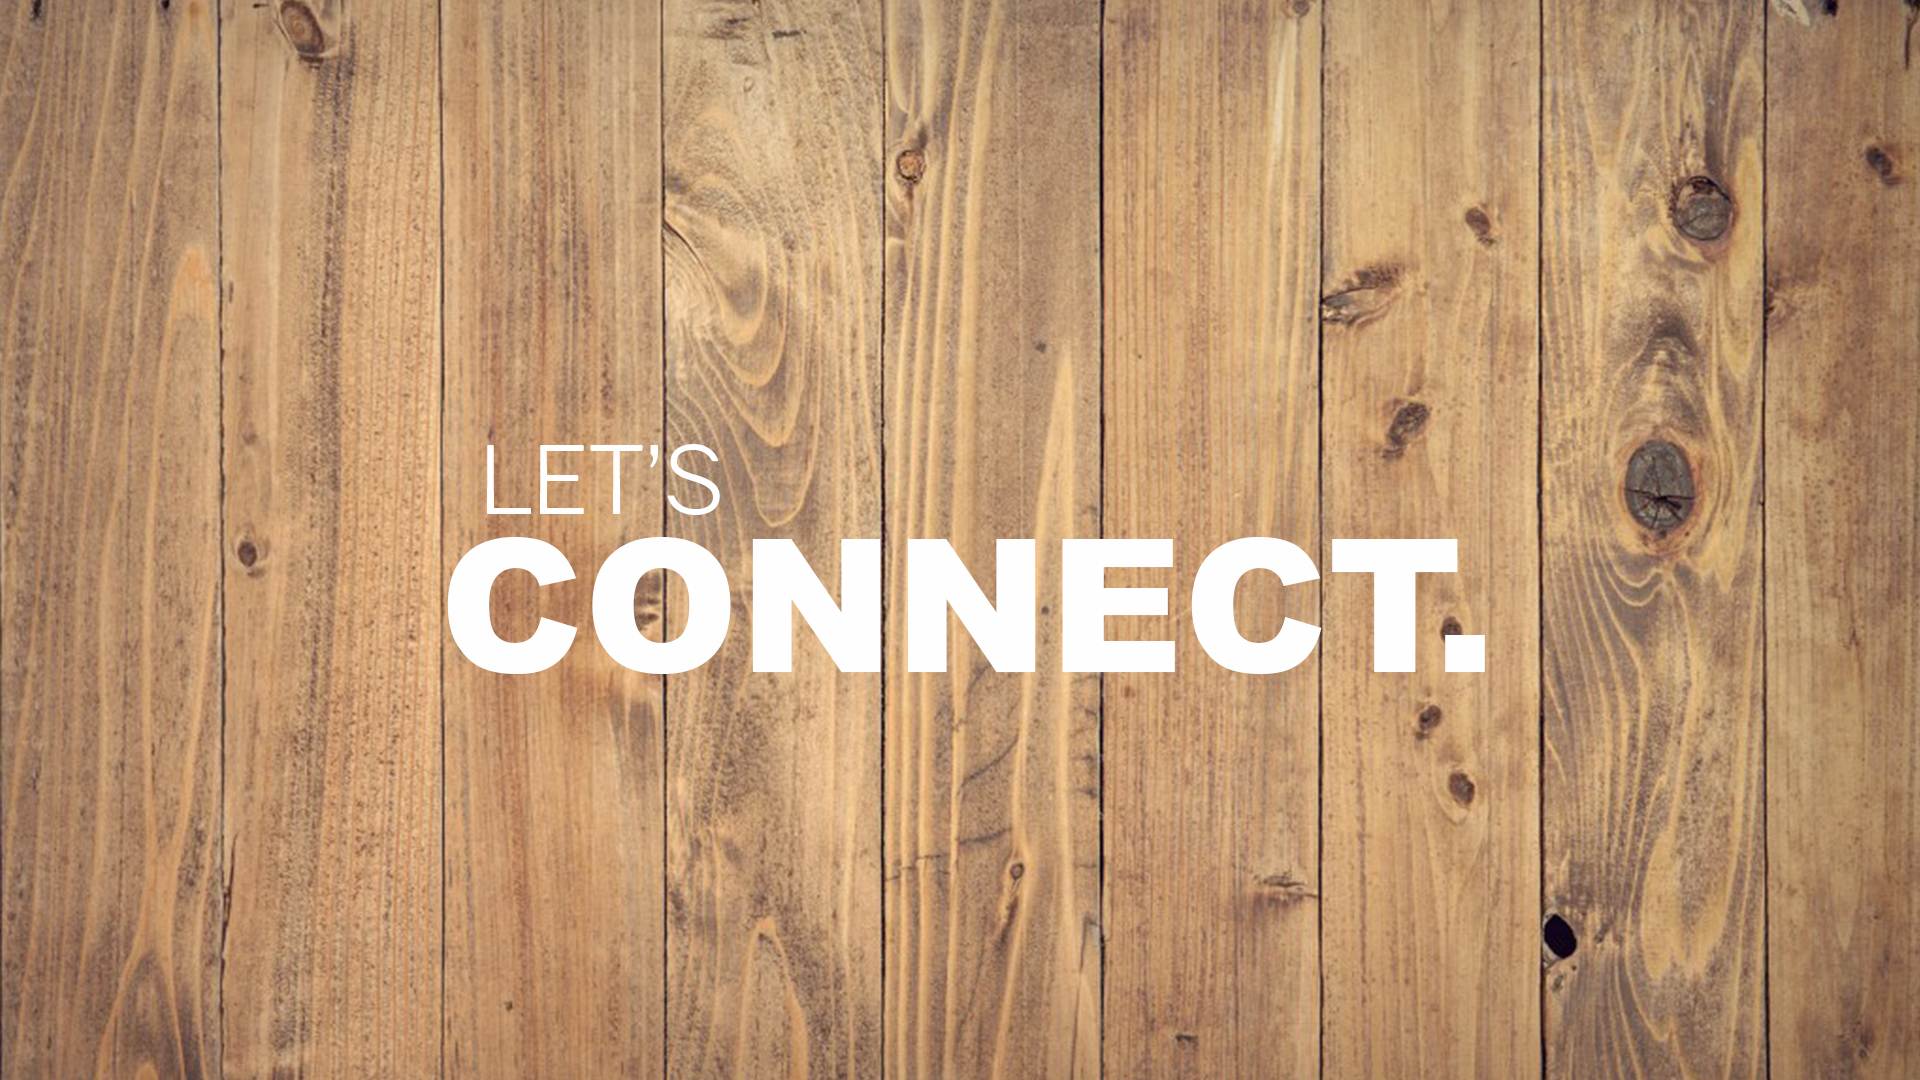 Let's Connect.jpg